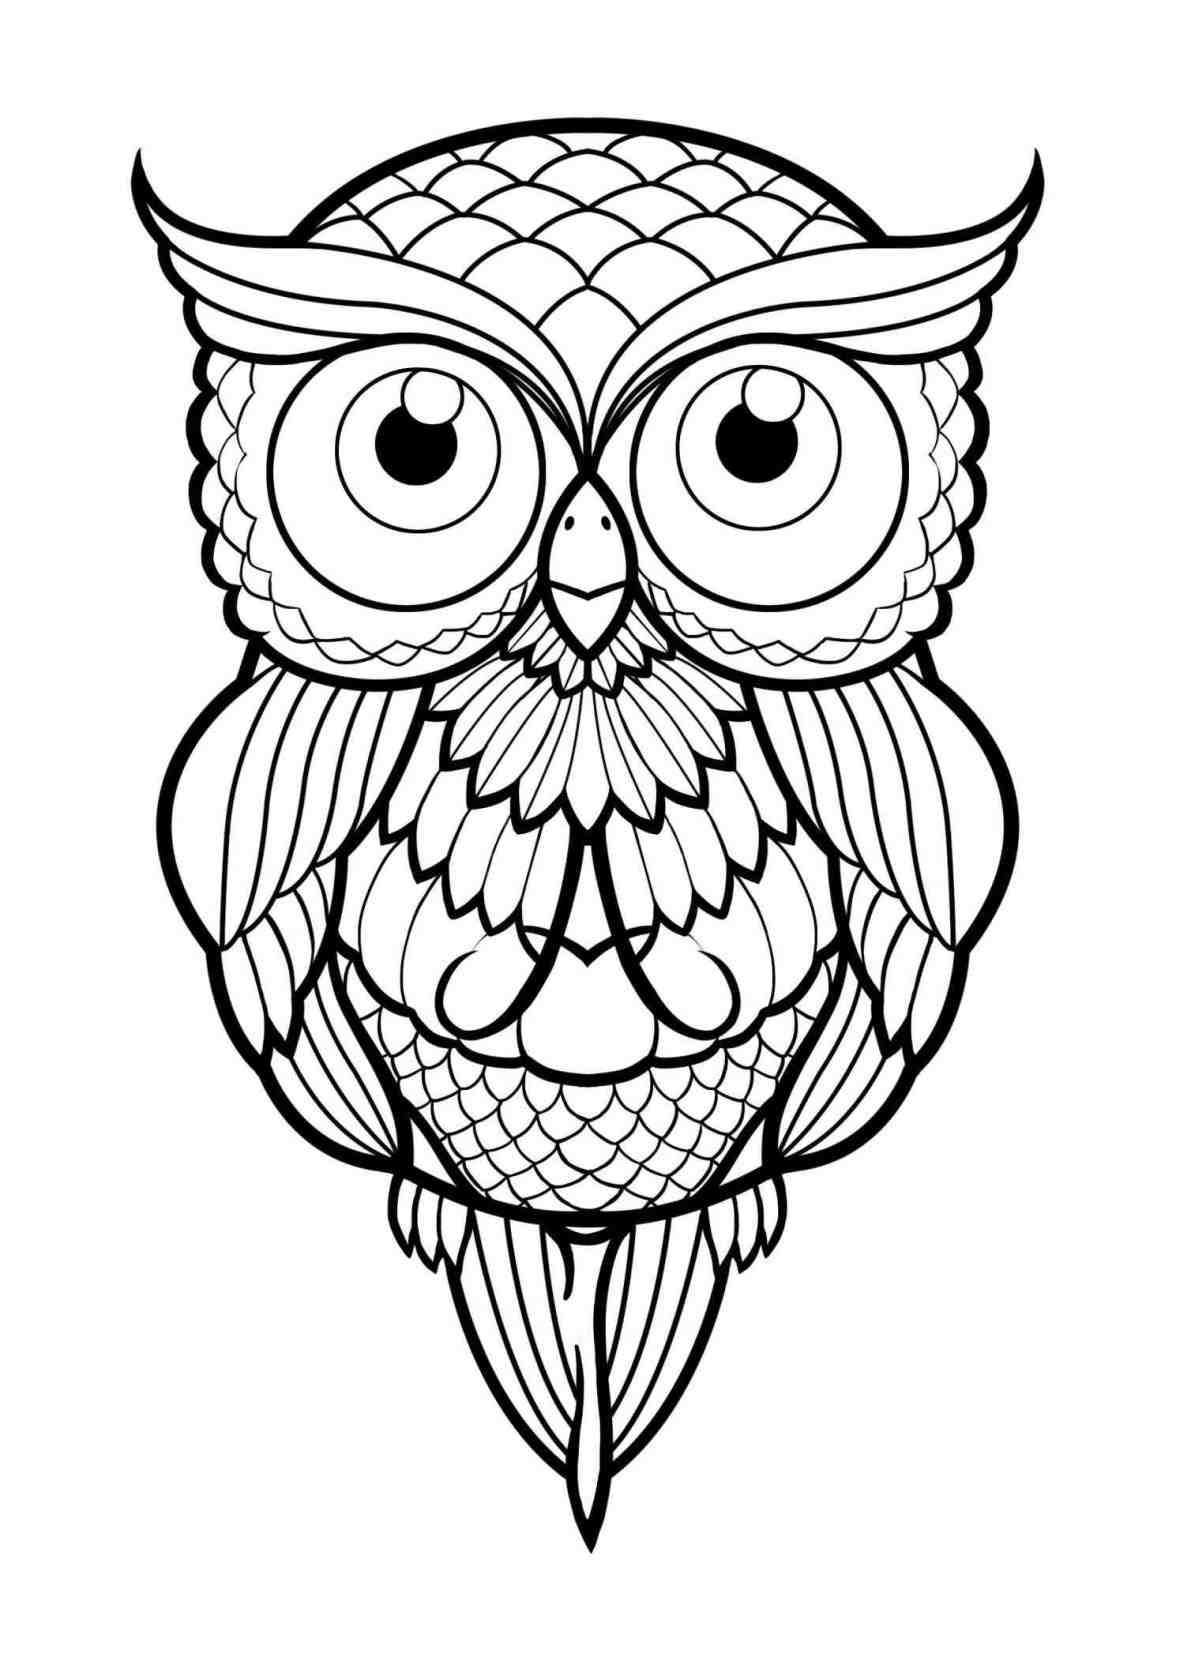 Easy Owl Drawing at GetDrawings.com | Free for personal use Easy Owl ...